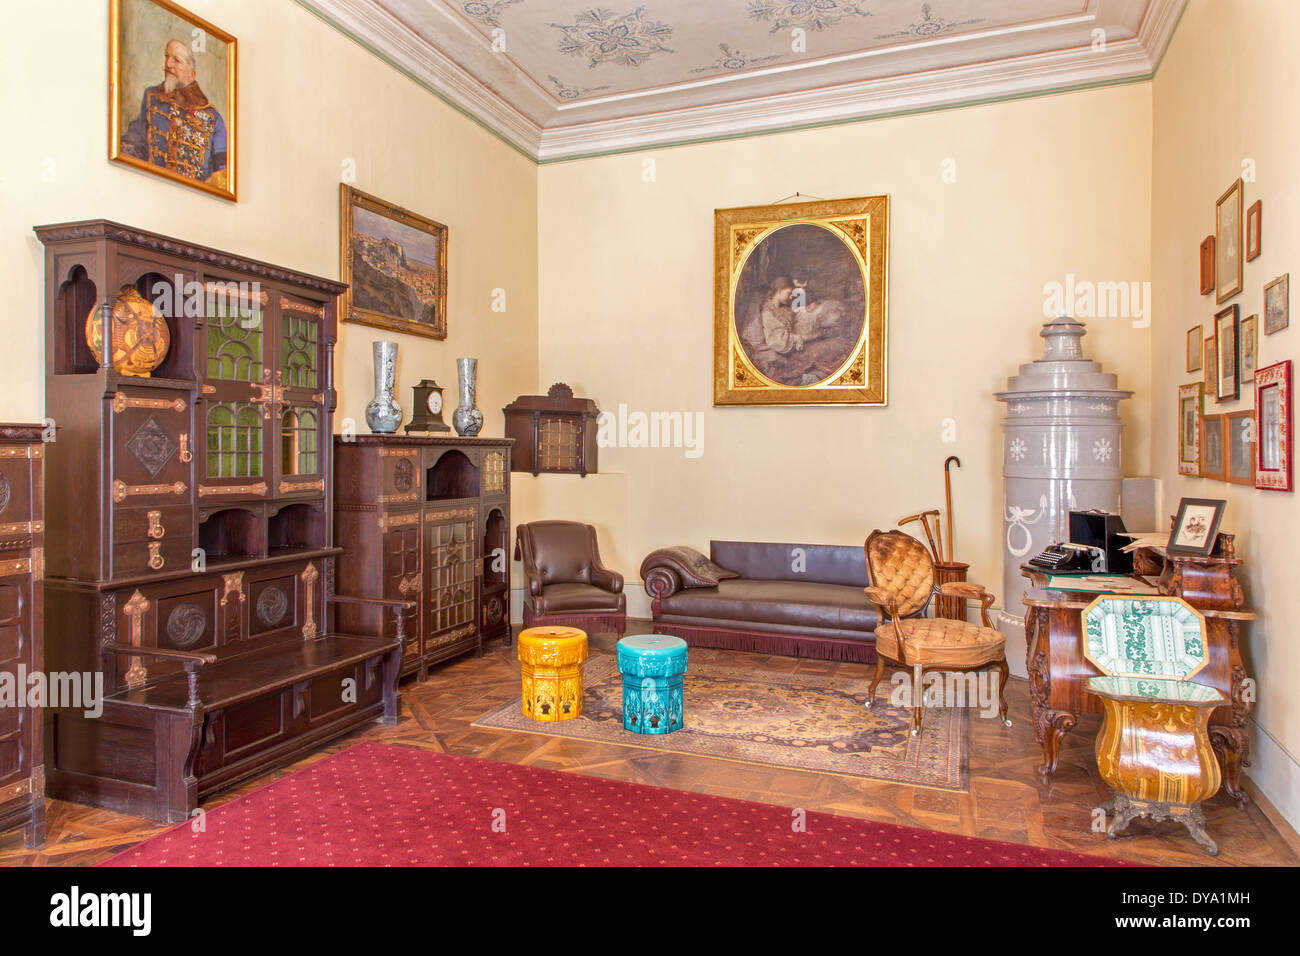 SAINT ANTON, SLOVAKIA - FEBRUARY 27, 2014: Bulgarian saloon in palace Saint Anton with the furniture form 19. cent. - Stock Image